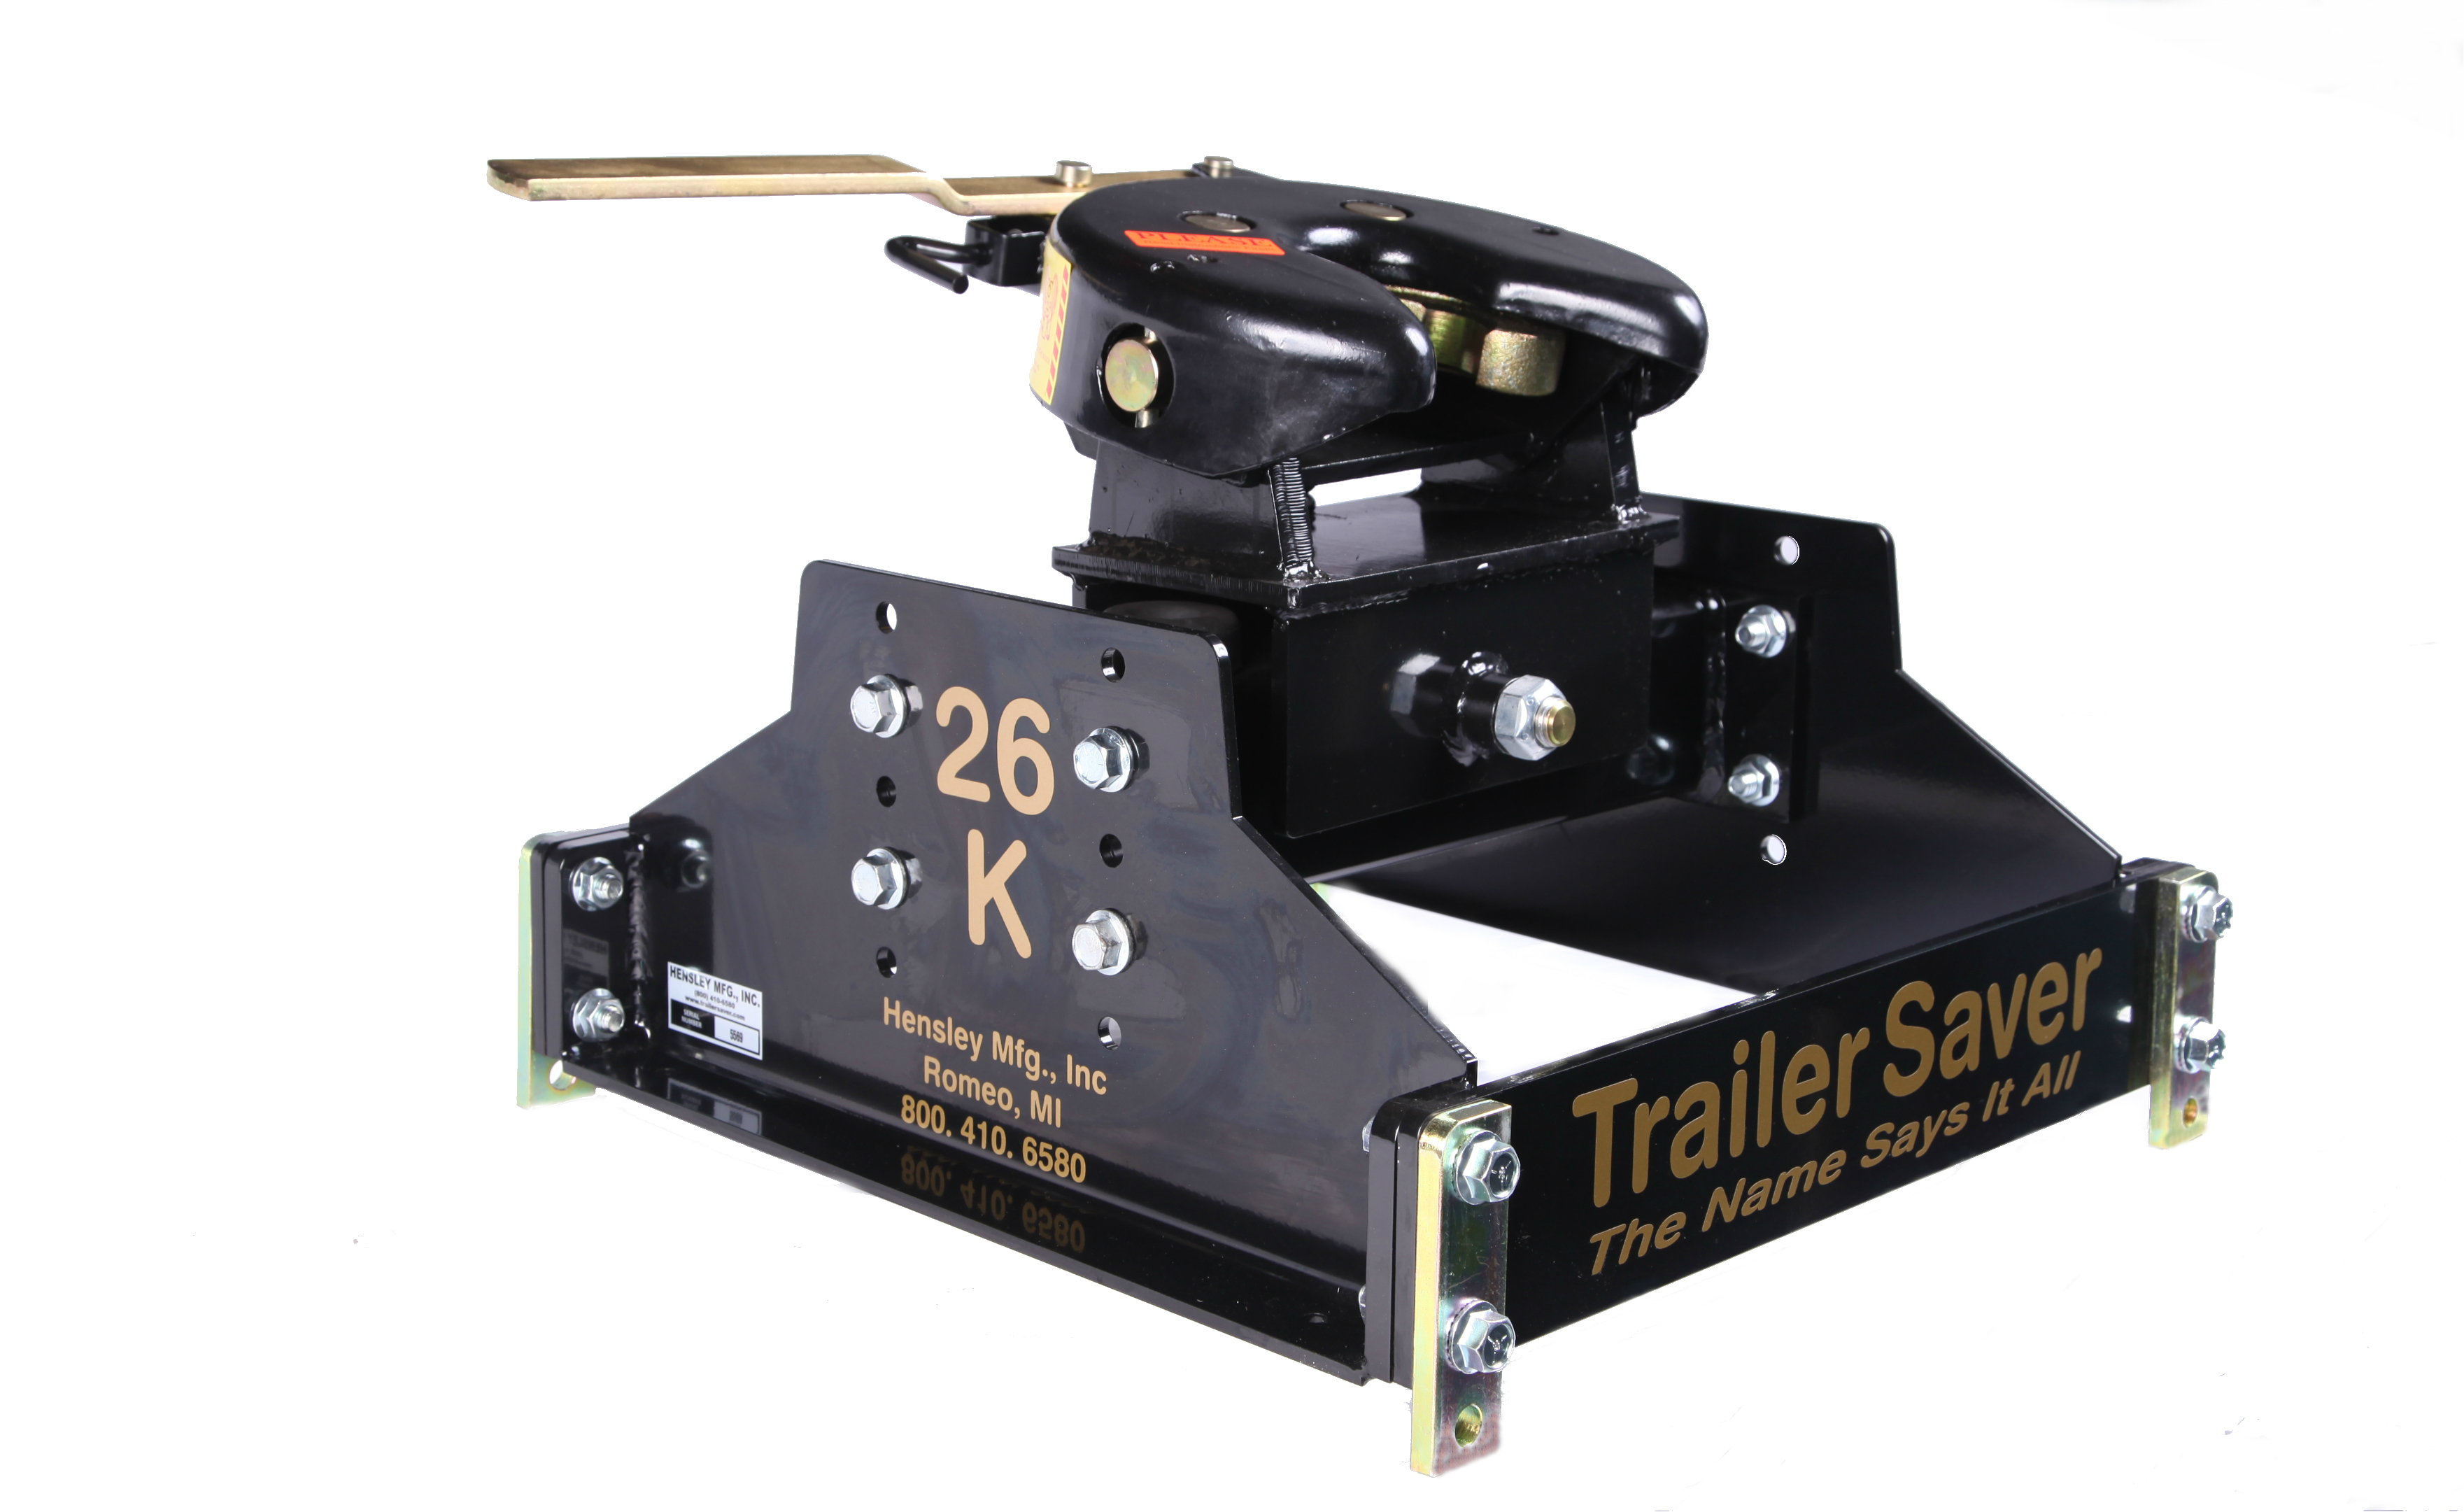 26k 5th Wheel Hitch